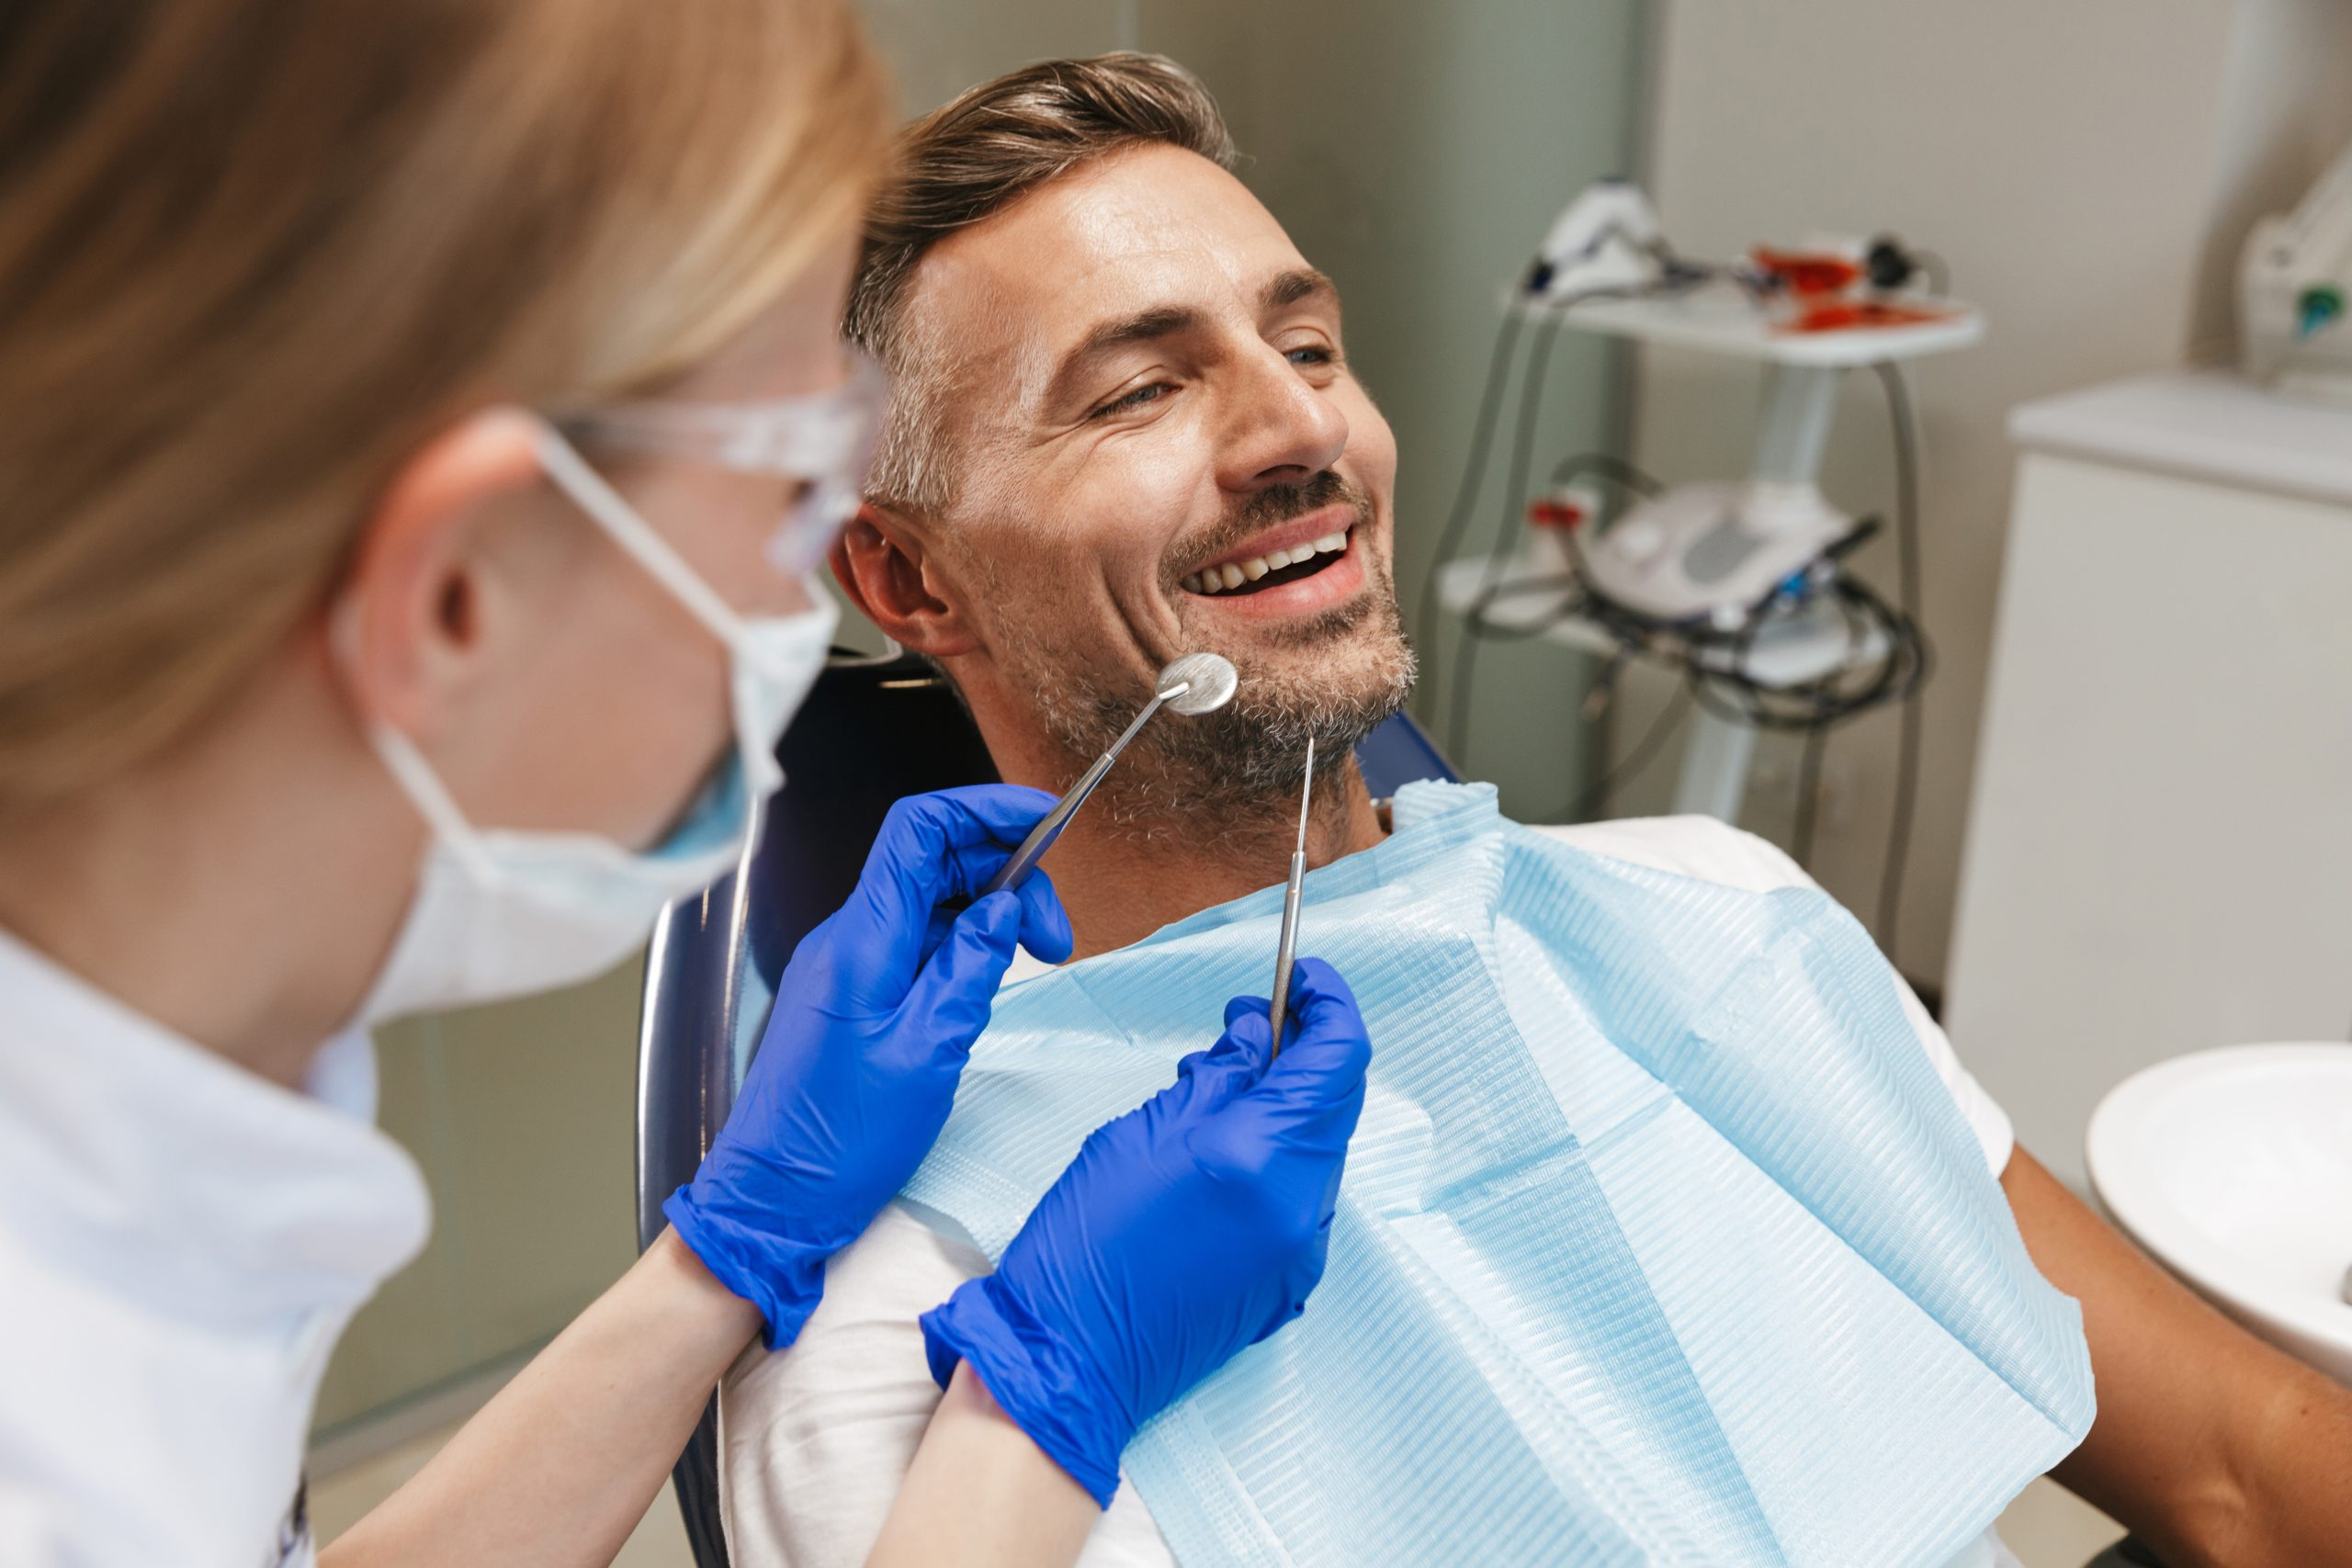 10 Things You Never Knew Your Dentist Does at Every Dental Checkup